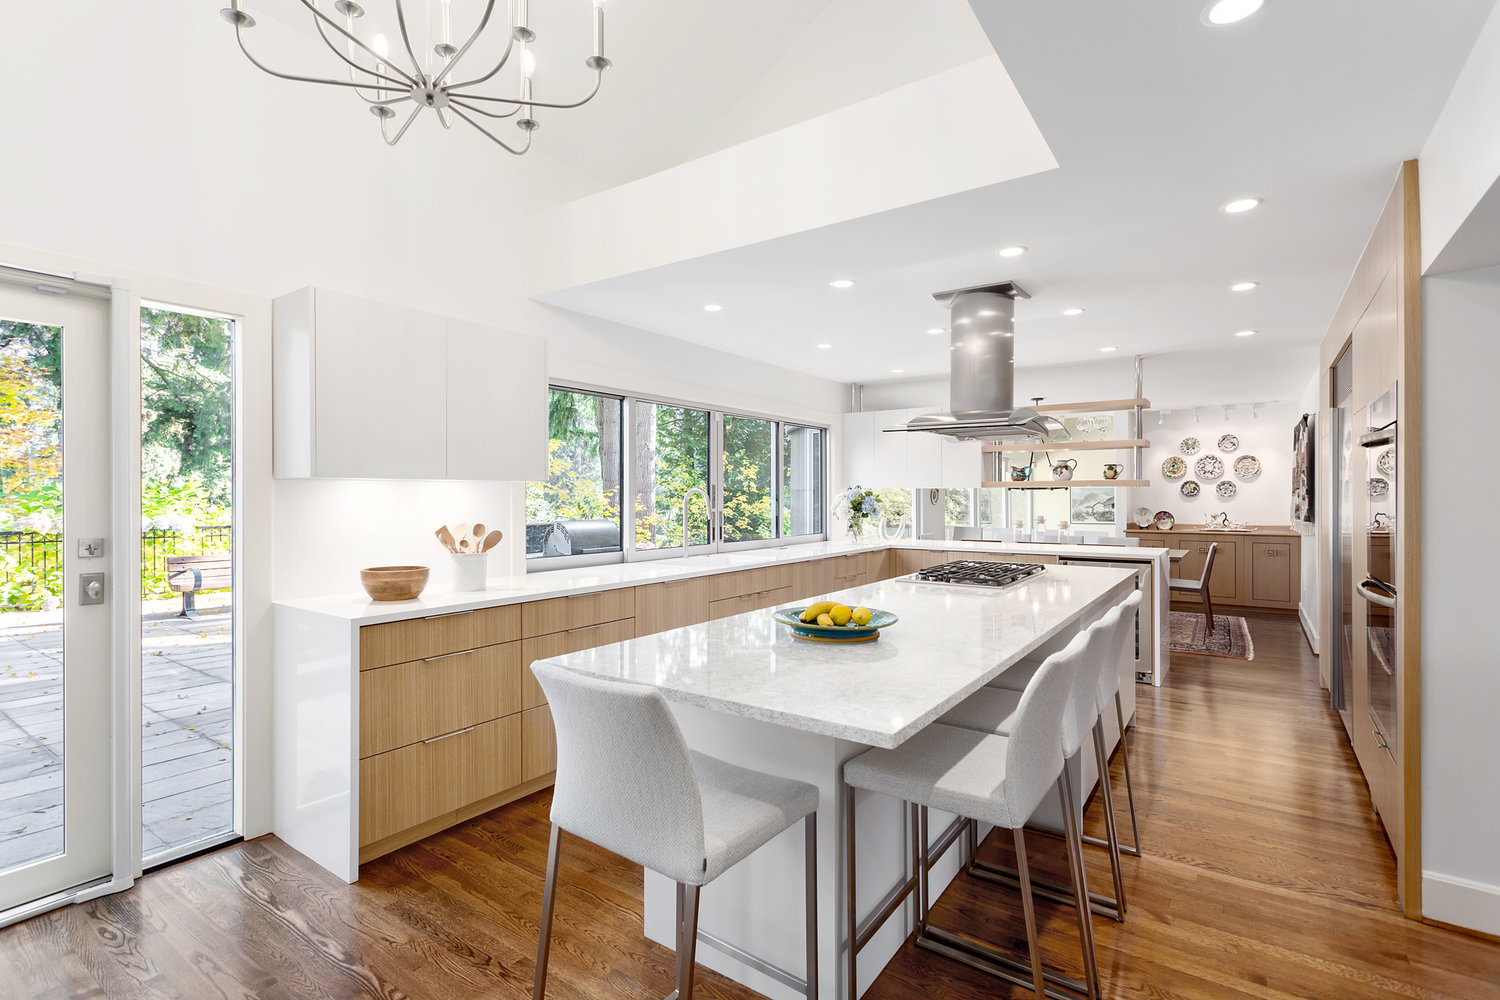 Vancouver Sun Online - We joined leading local designers to offer our tips on picking the perfect white paint for your home.View the article